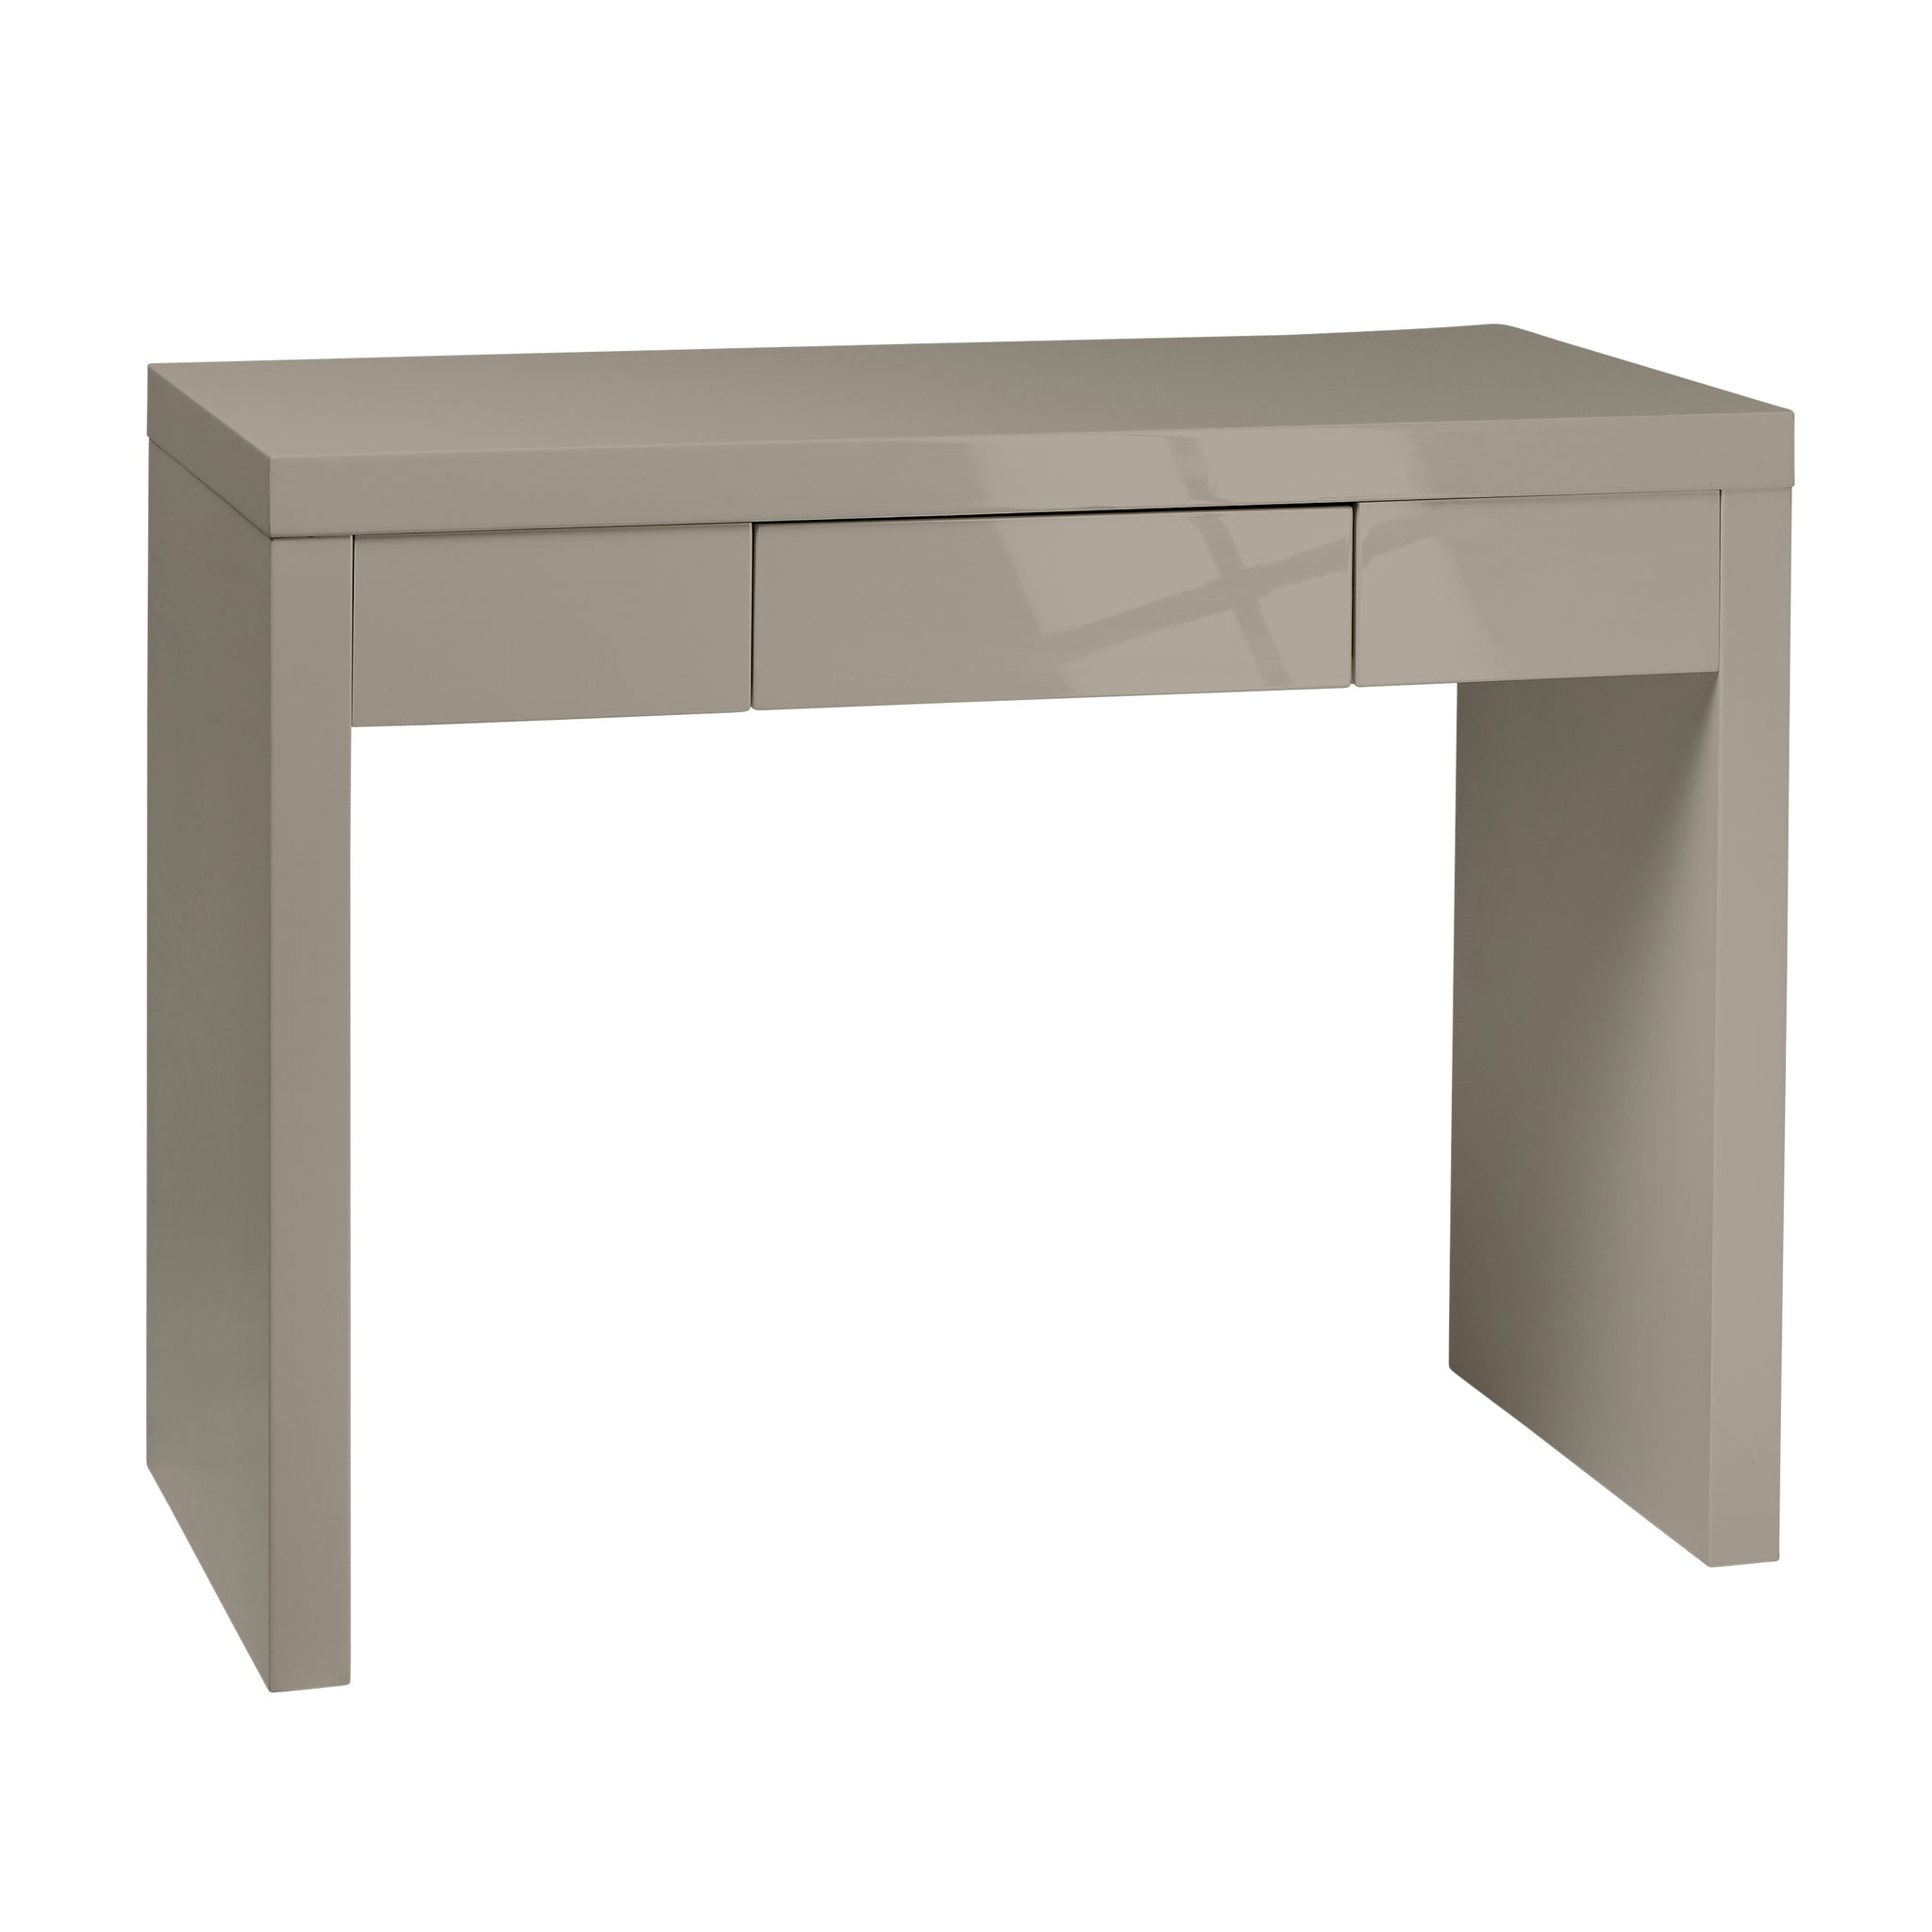 Cuba Console Table in Stone - Ezzo